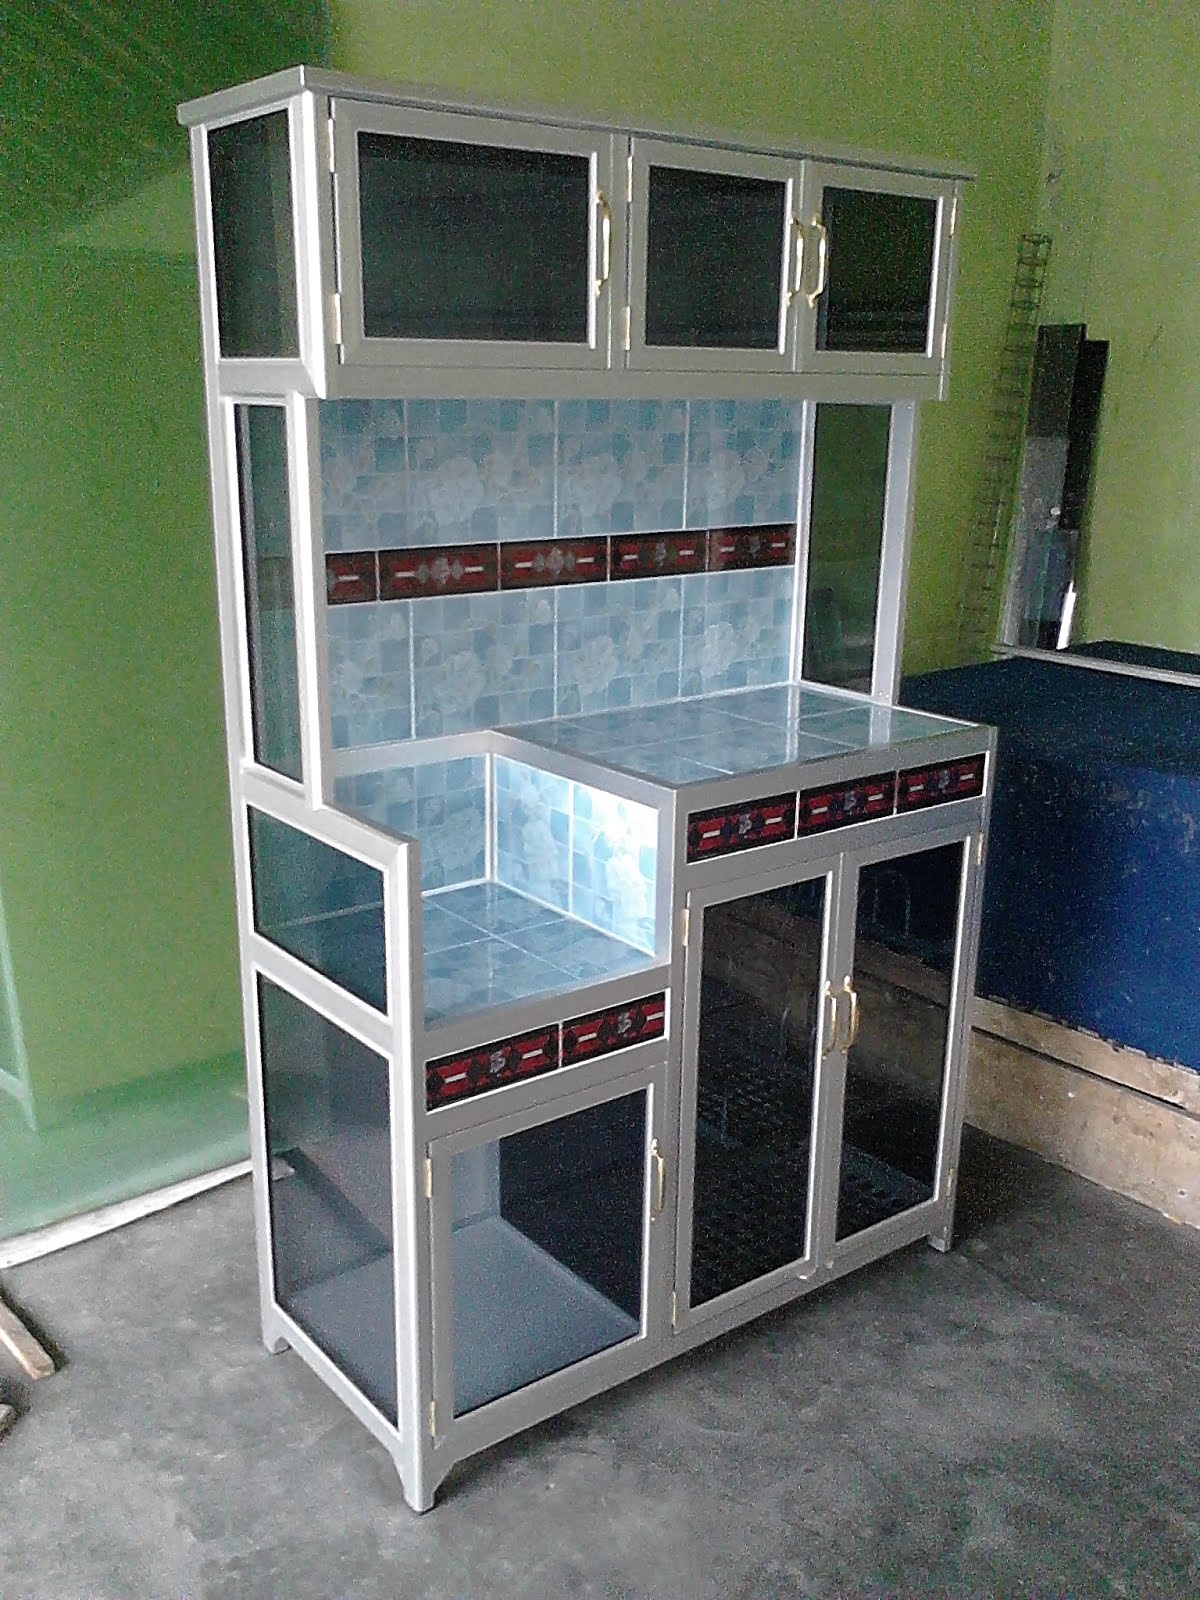 Harga kitchen set aluminium murah jual for Dapur set aluminium